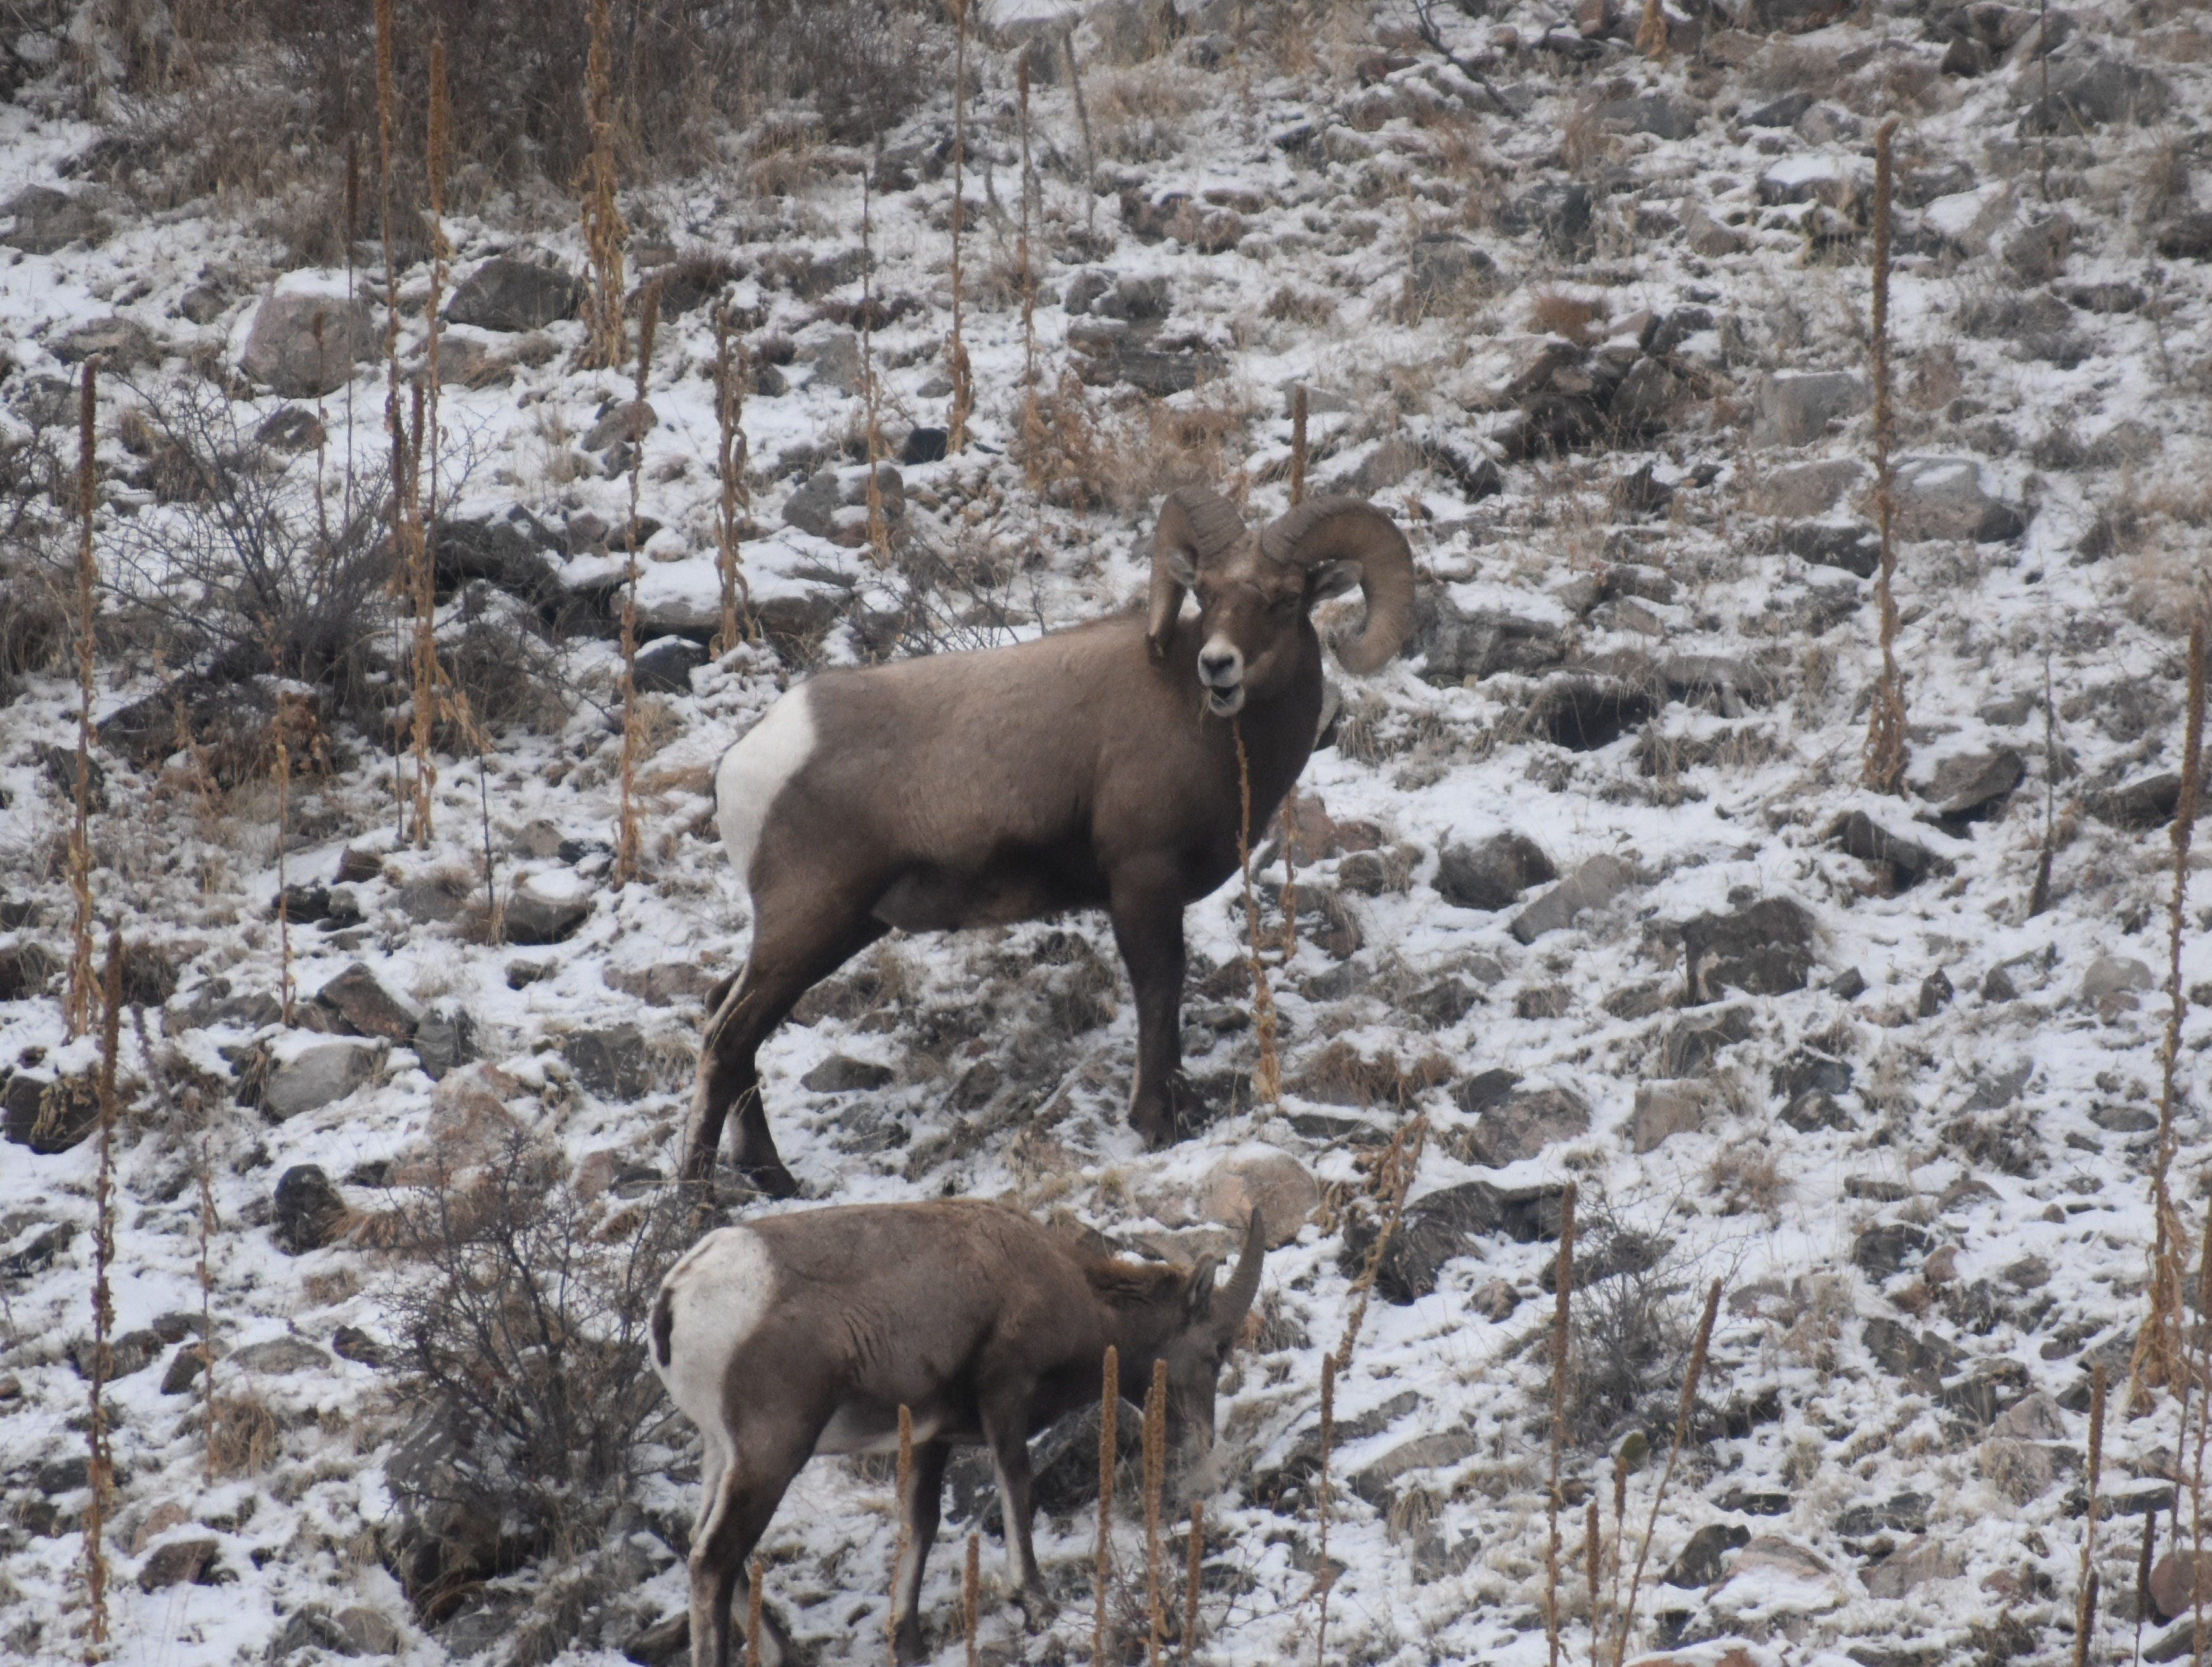 Winters can be tough on bighorn sheep so please don't stress them out with your watching. It is best to observe them from your vehicle using binoculars and/or long telephoto lens.